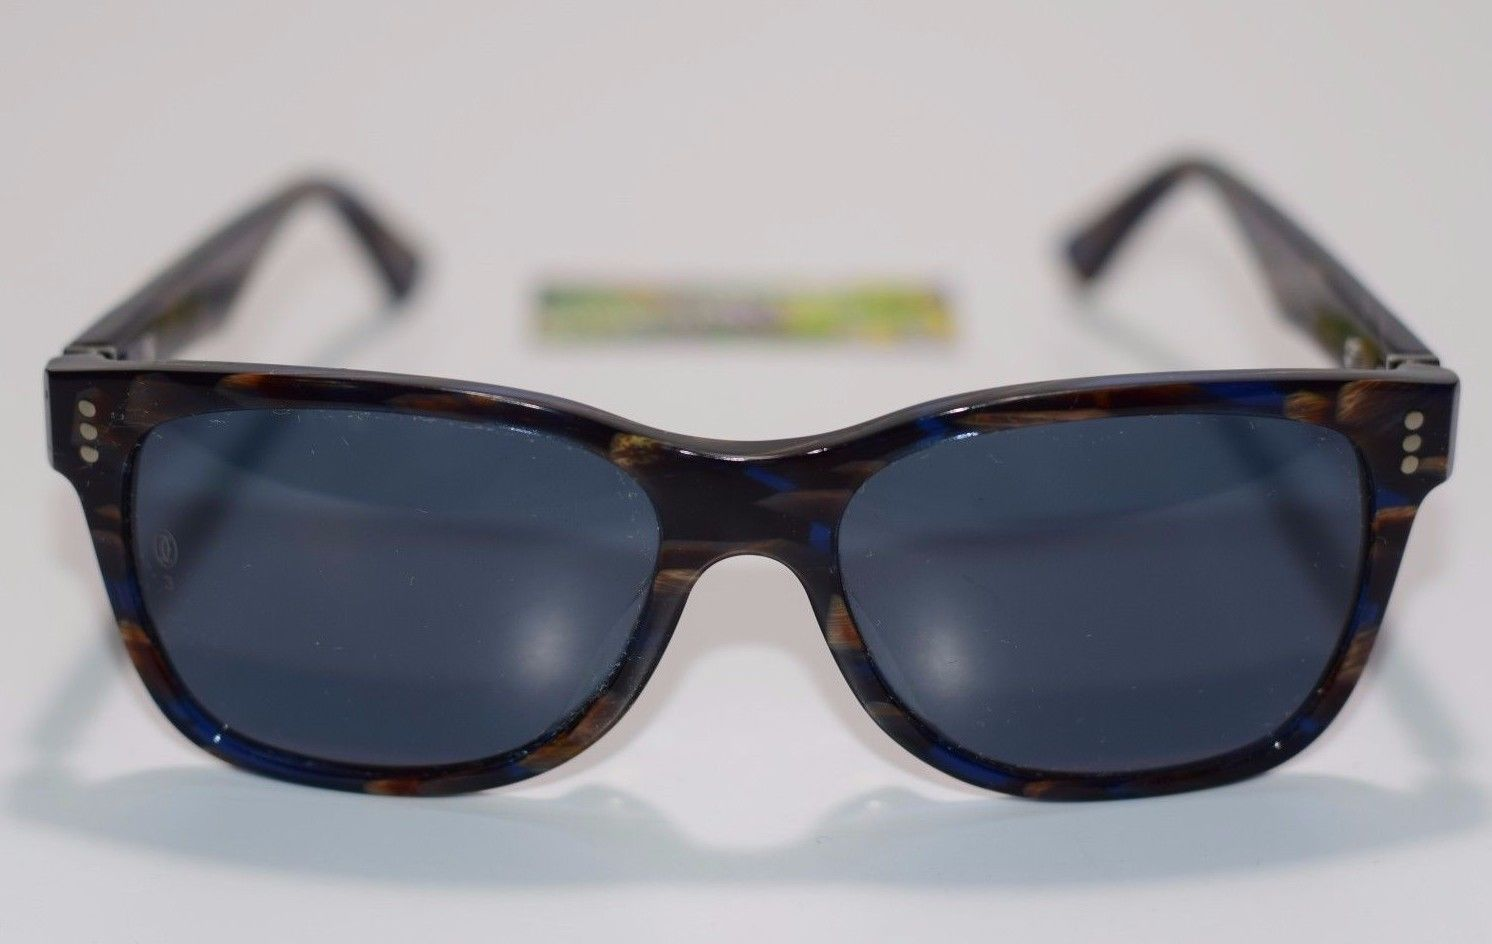 a96caa53115 Cartier Paris Mens Sunglasses 140MM Handmade in Italy Designer  1395 Retail  on Storenvy